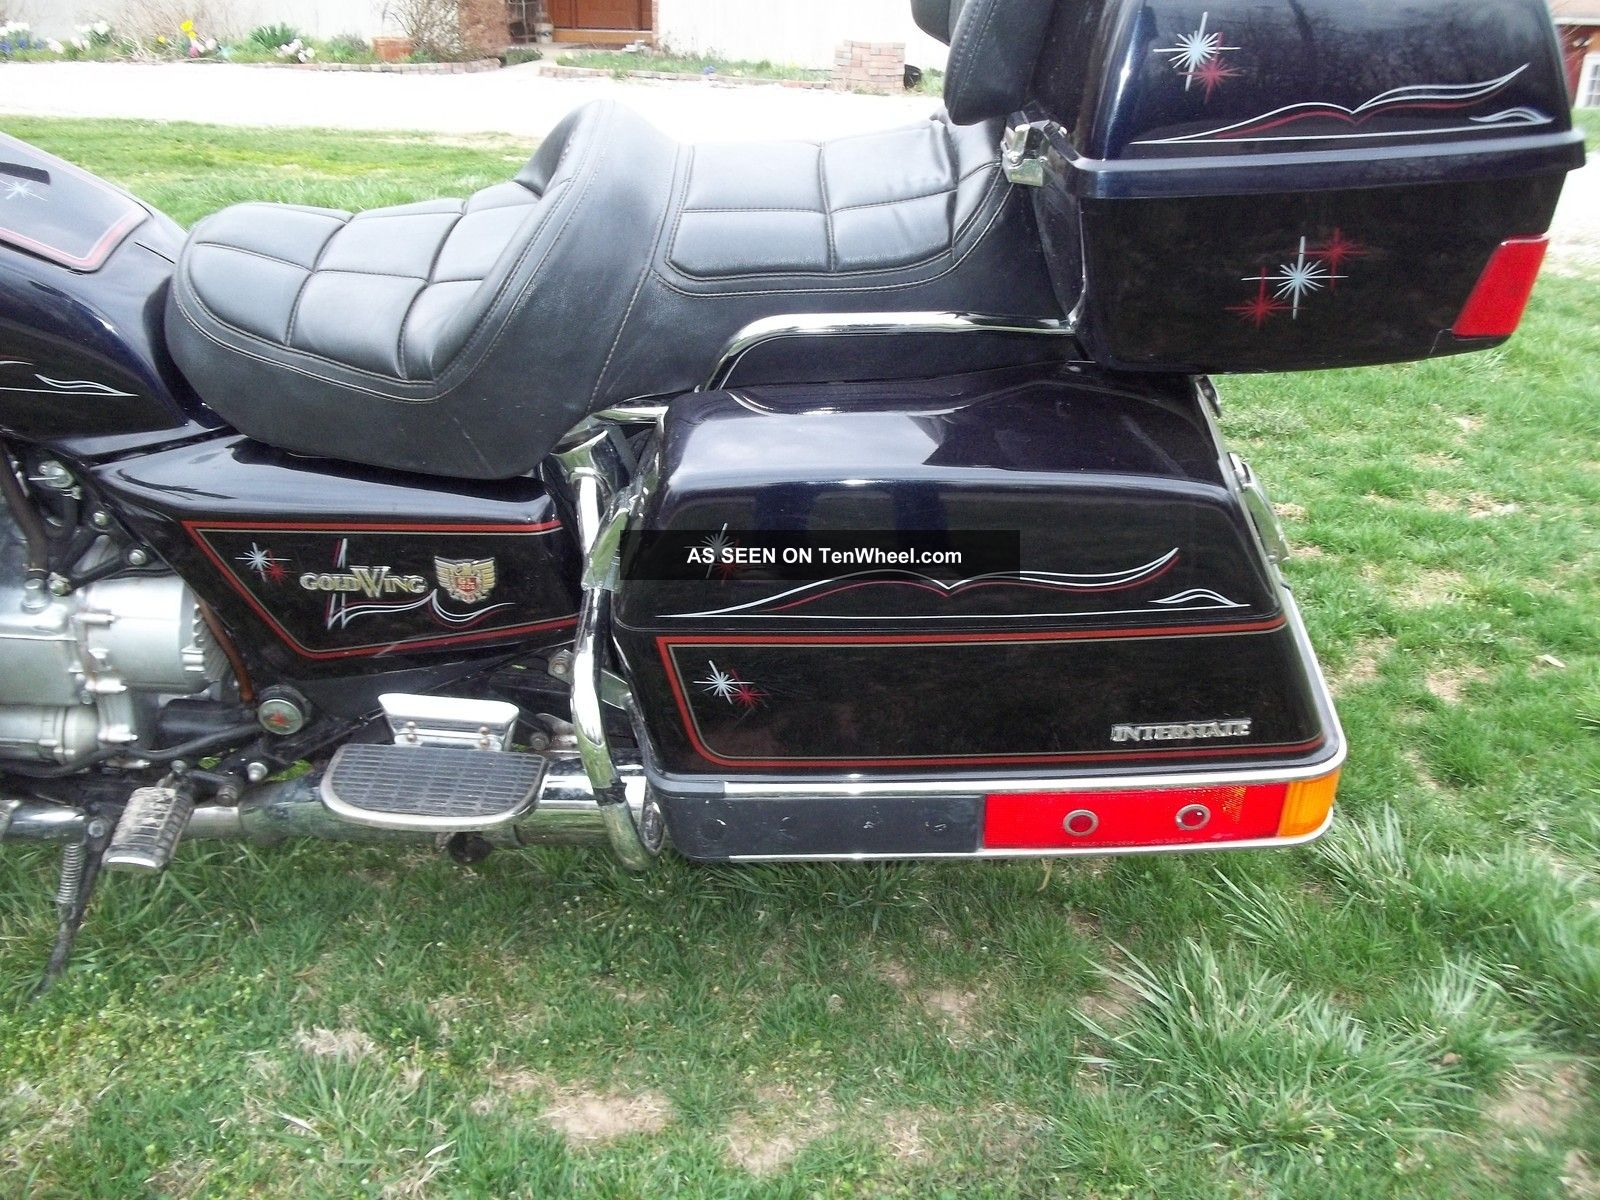 1984 Honda Goldwing Gl1200 Interstate Show Room Condition